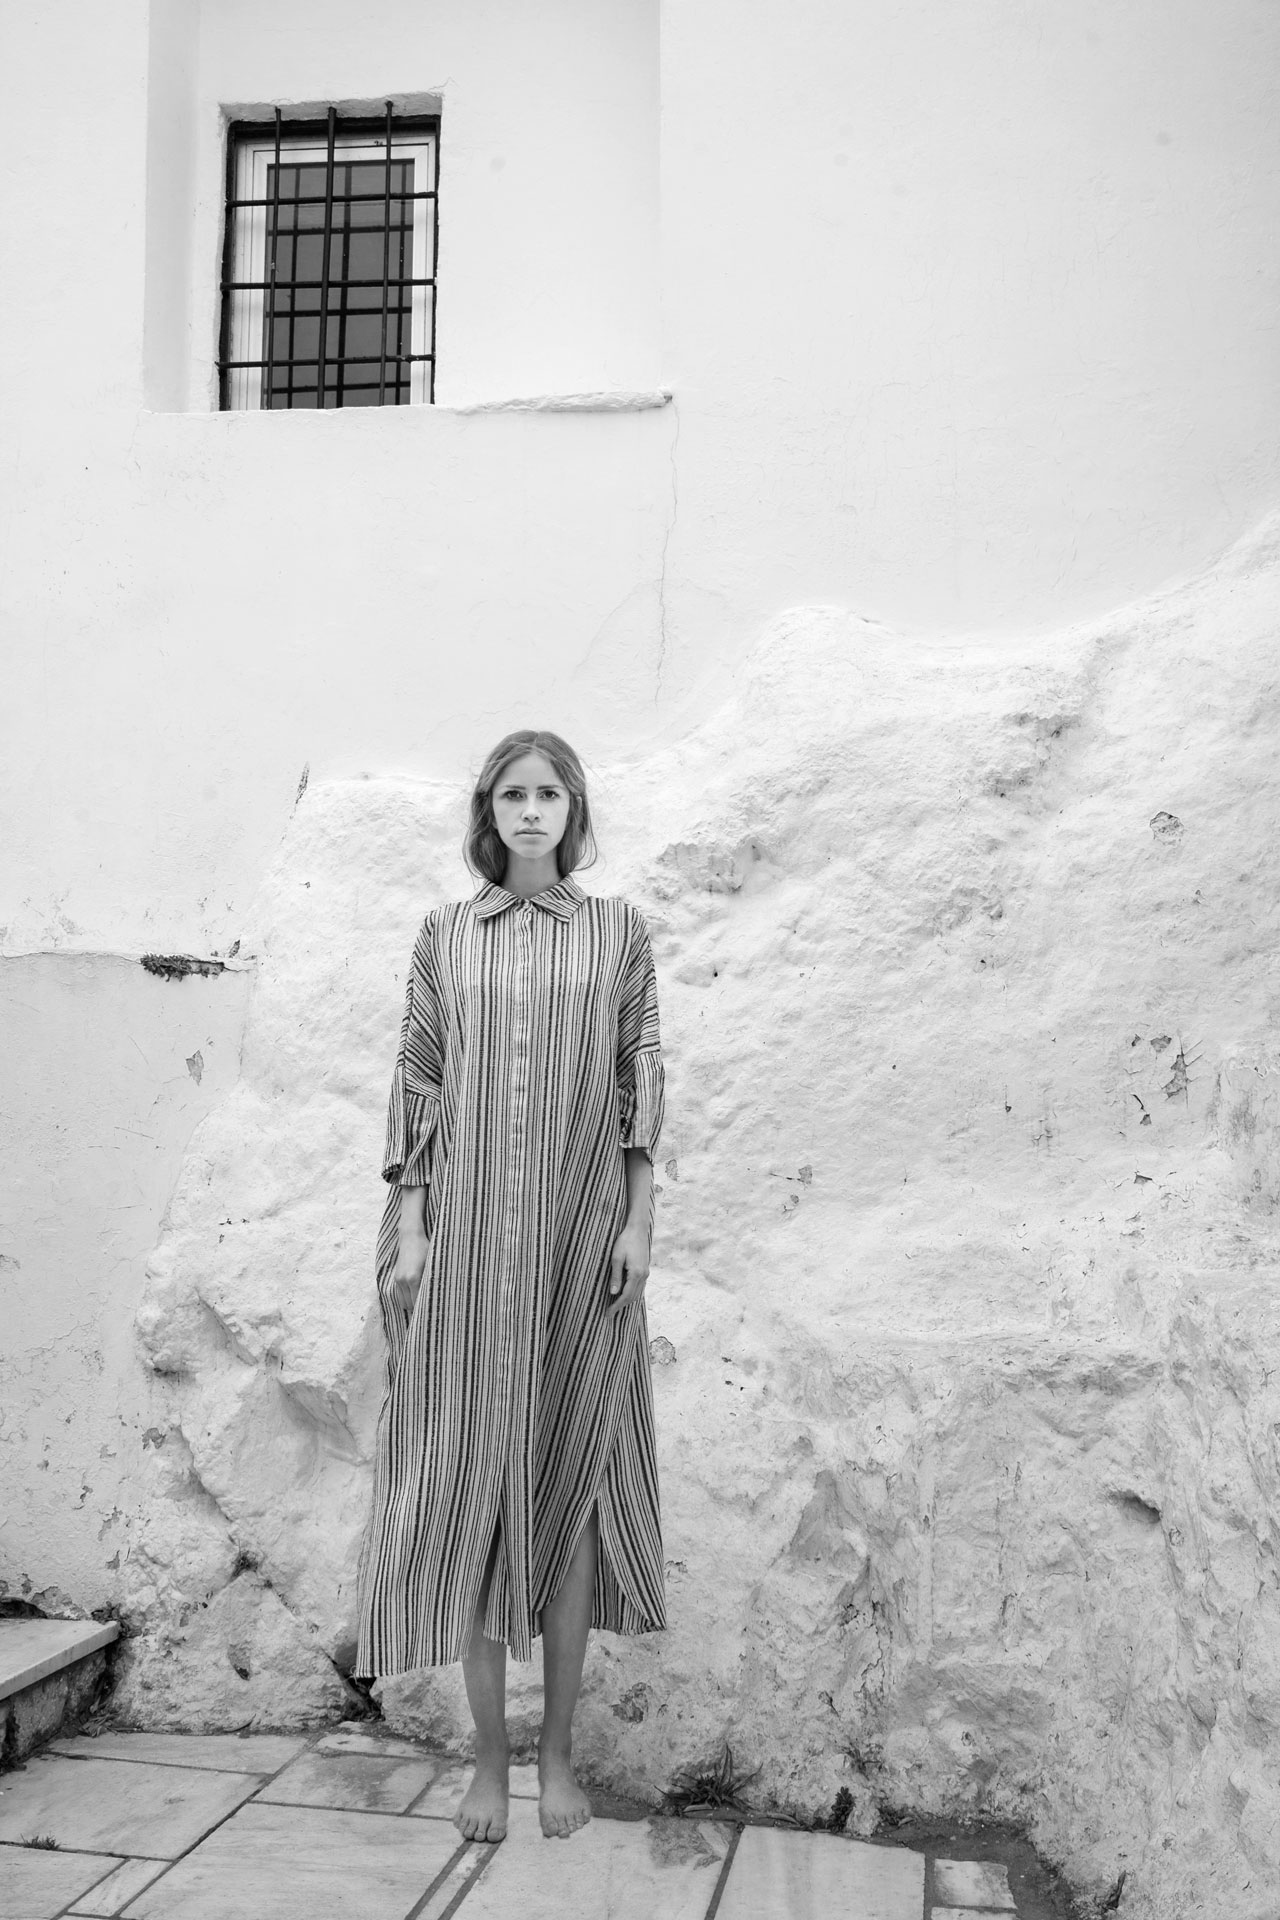 ERGON MYKONOS SS16Art direction: George PavlakisPhotographer: Kwnstantinos MalekakisMake up artist & Hair: Elena PsomaModels: Antigoni Tantsi & Theresa (d.models)